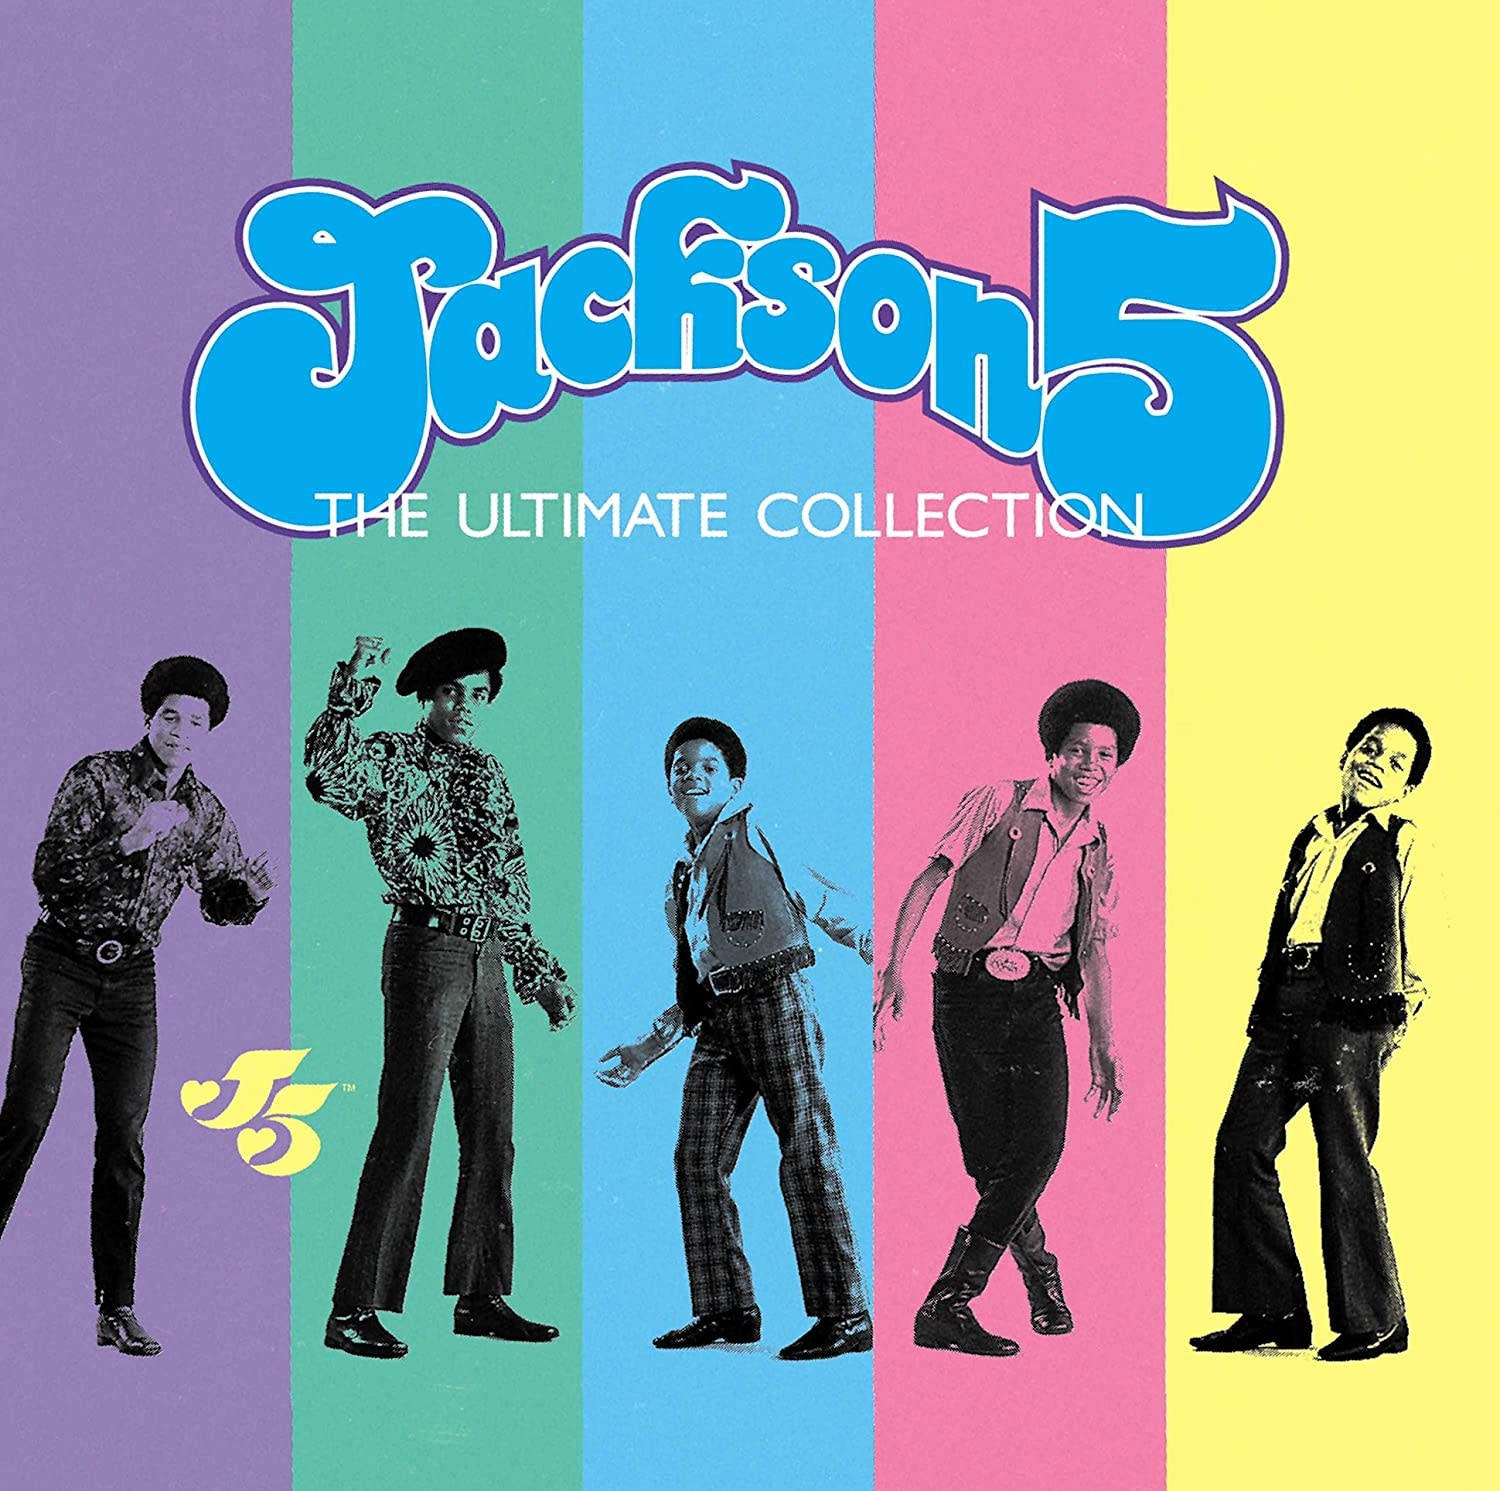 Jackson 5 – The Ultimate Collection